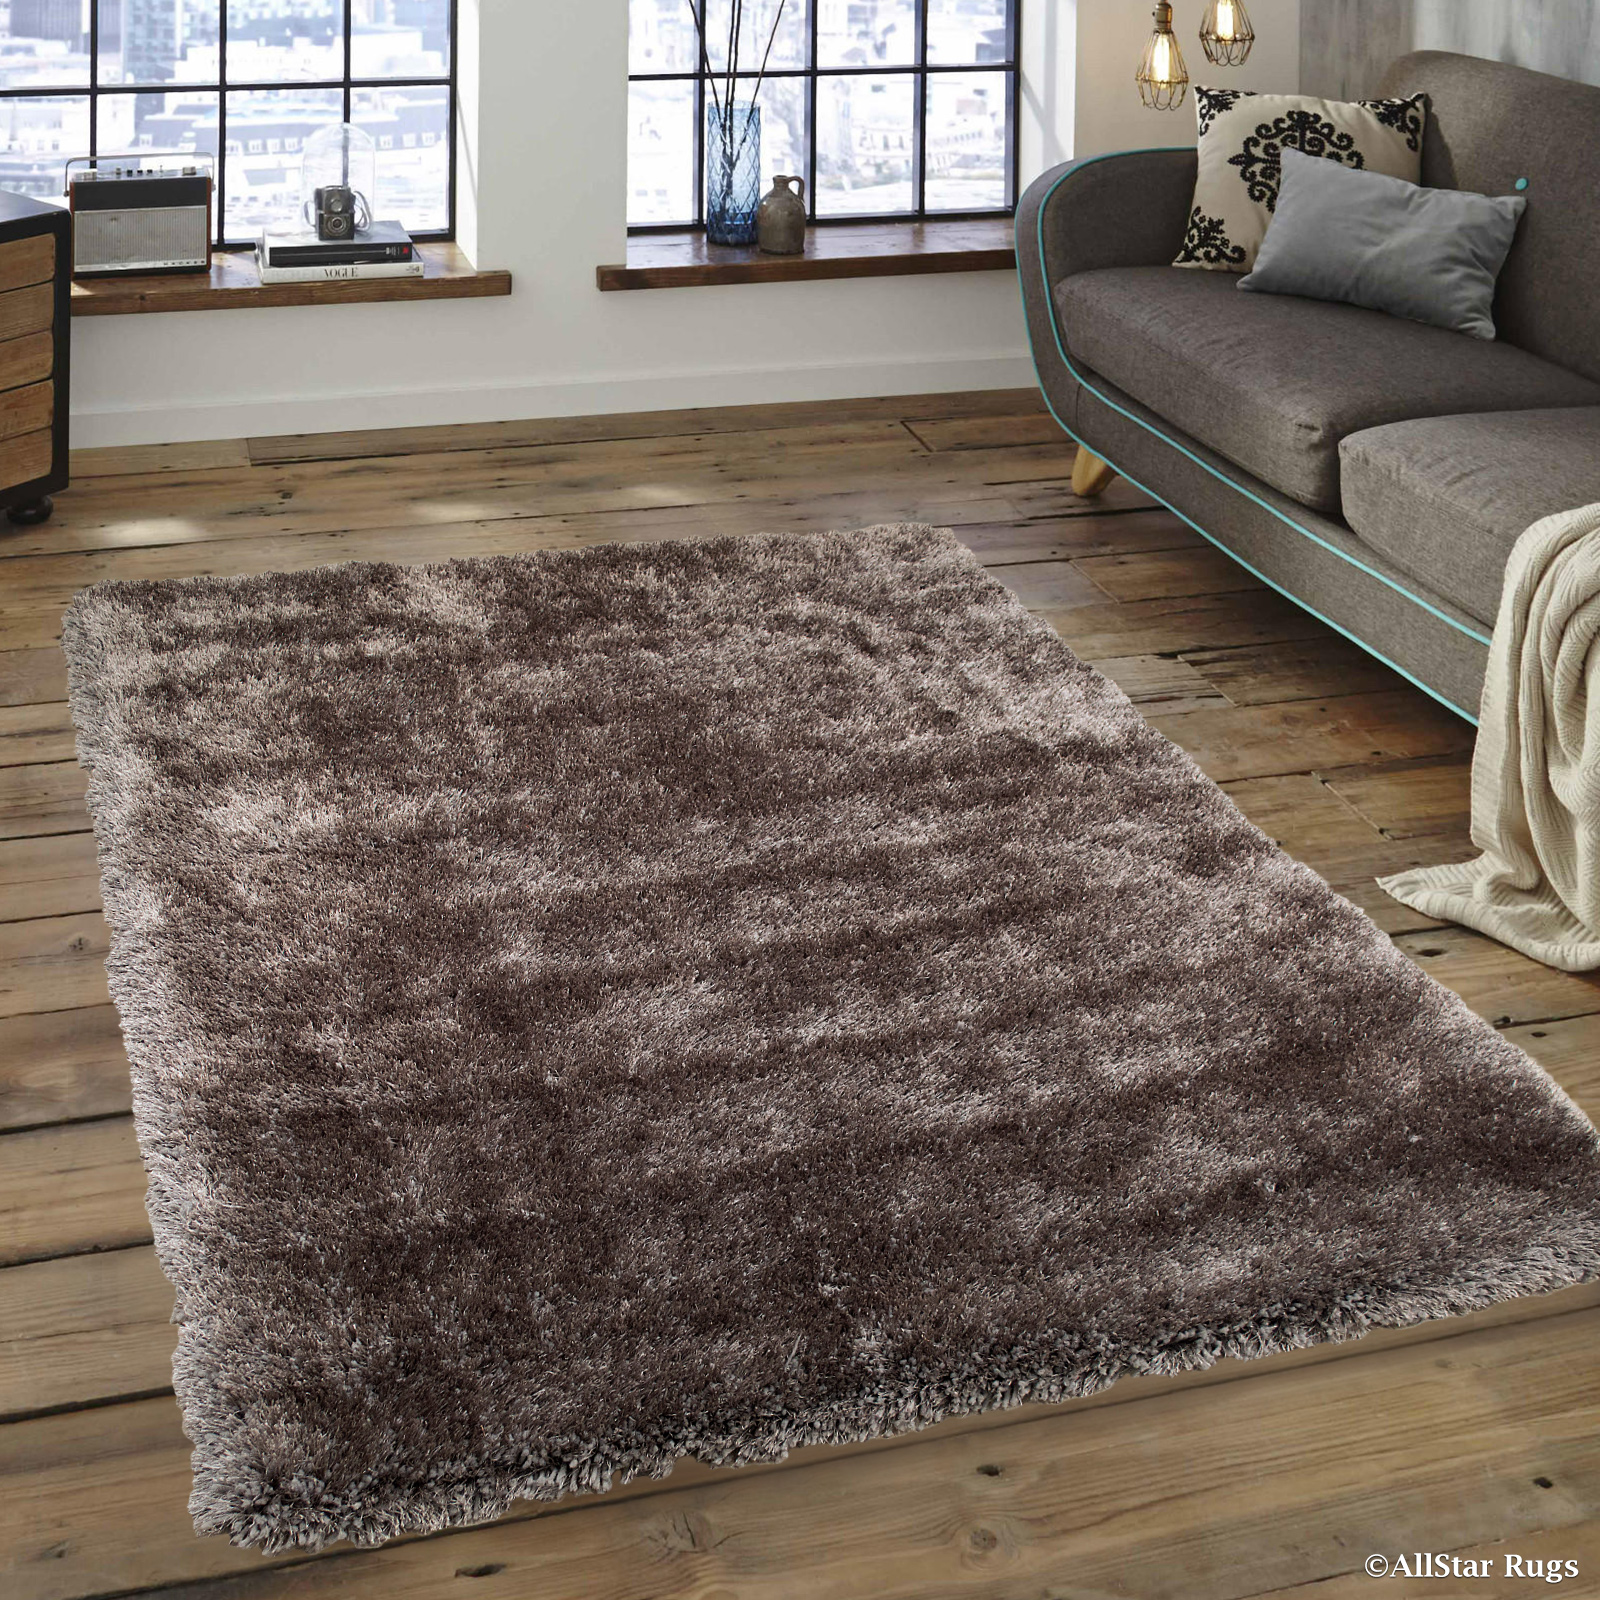 """Allstar Silver High Density and High Quality High End Shaggy Area Rug. Very Soft Extra comfort (3' 8"""" x 5' 1"""")"""